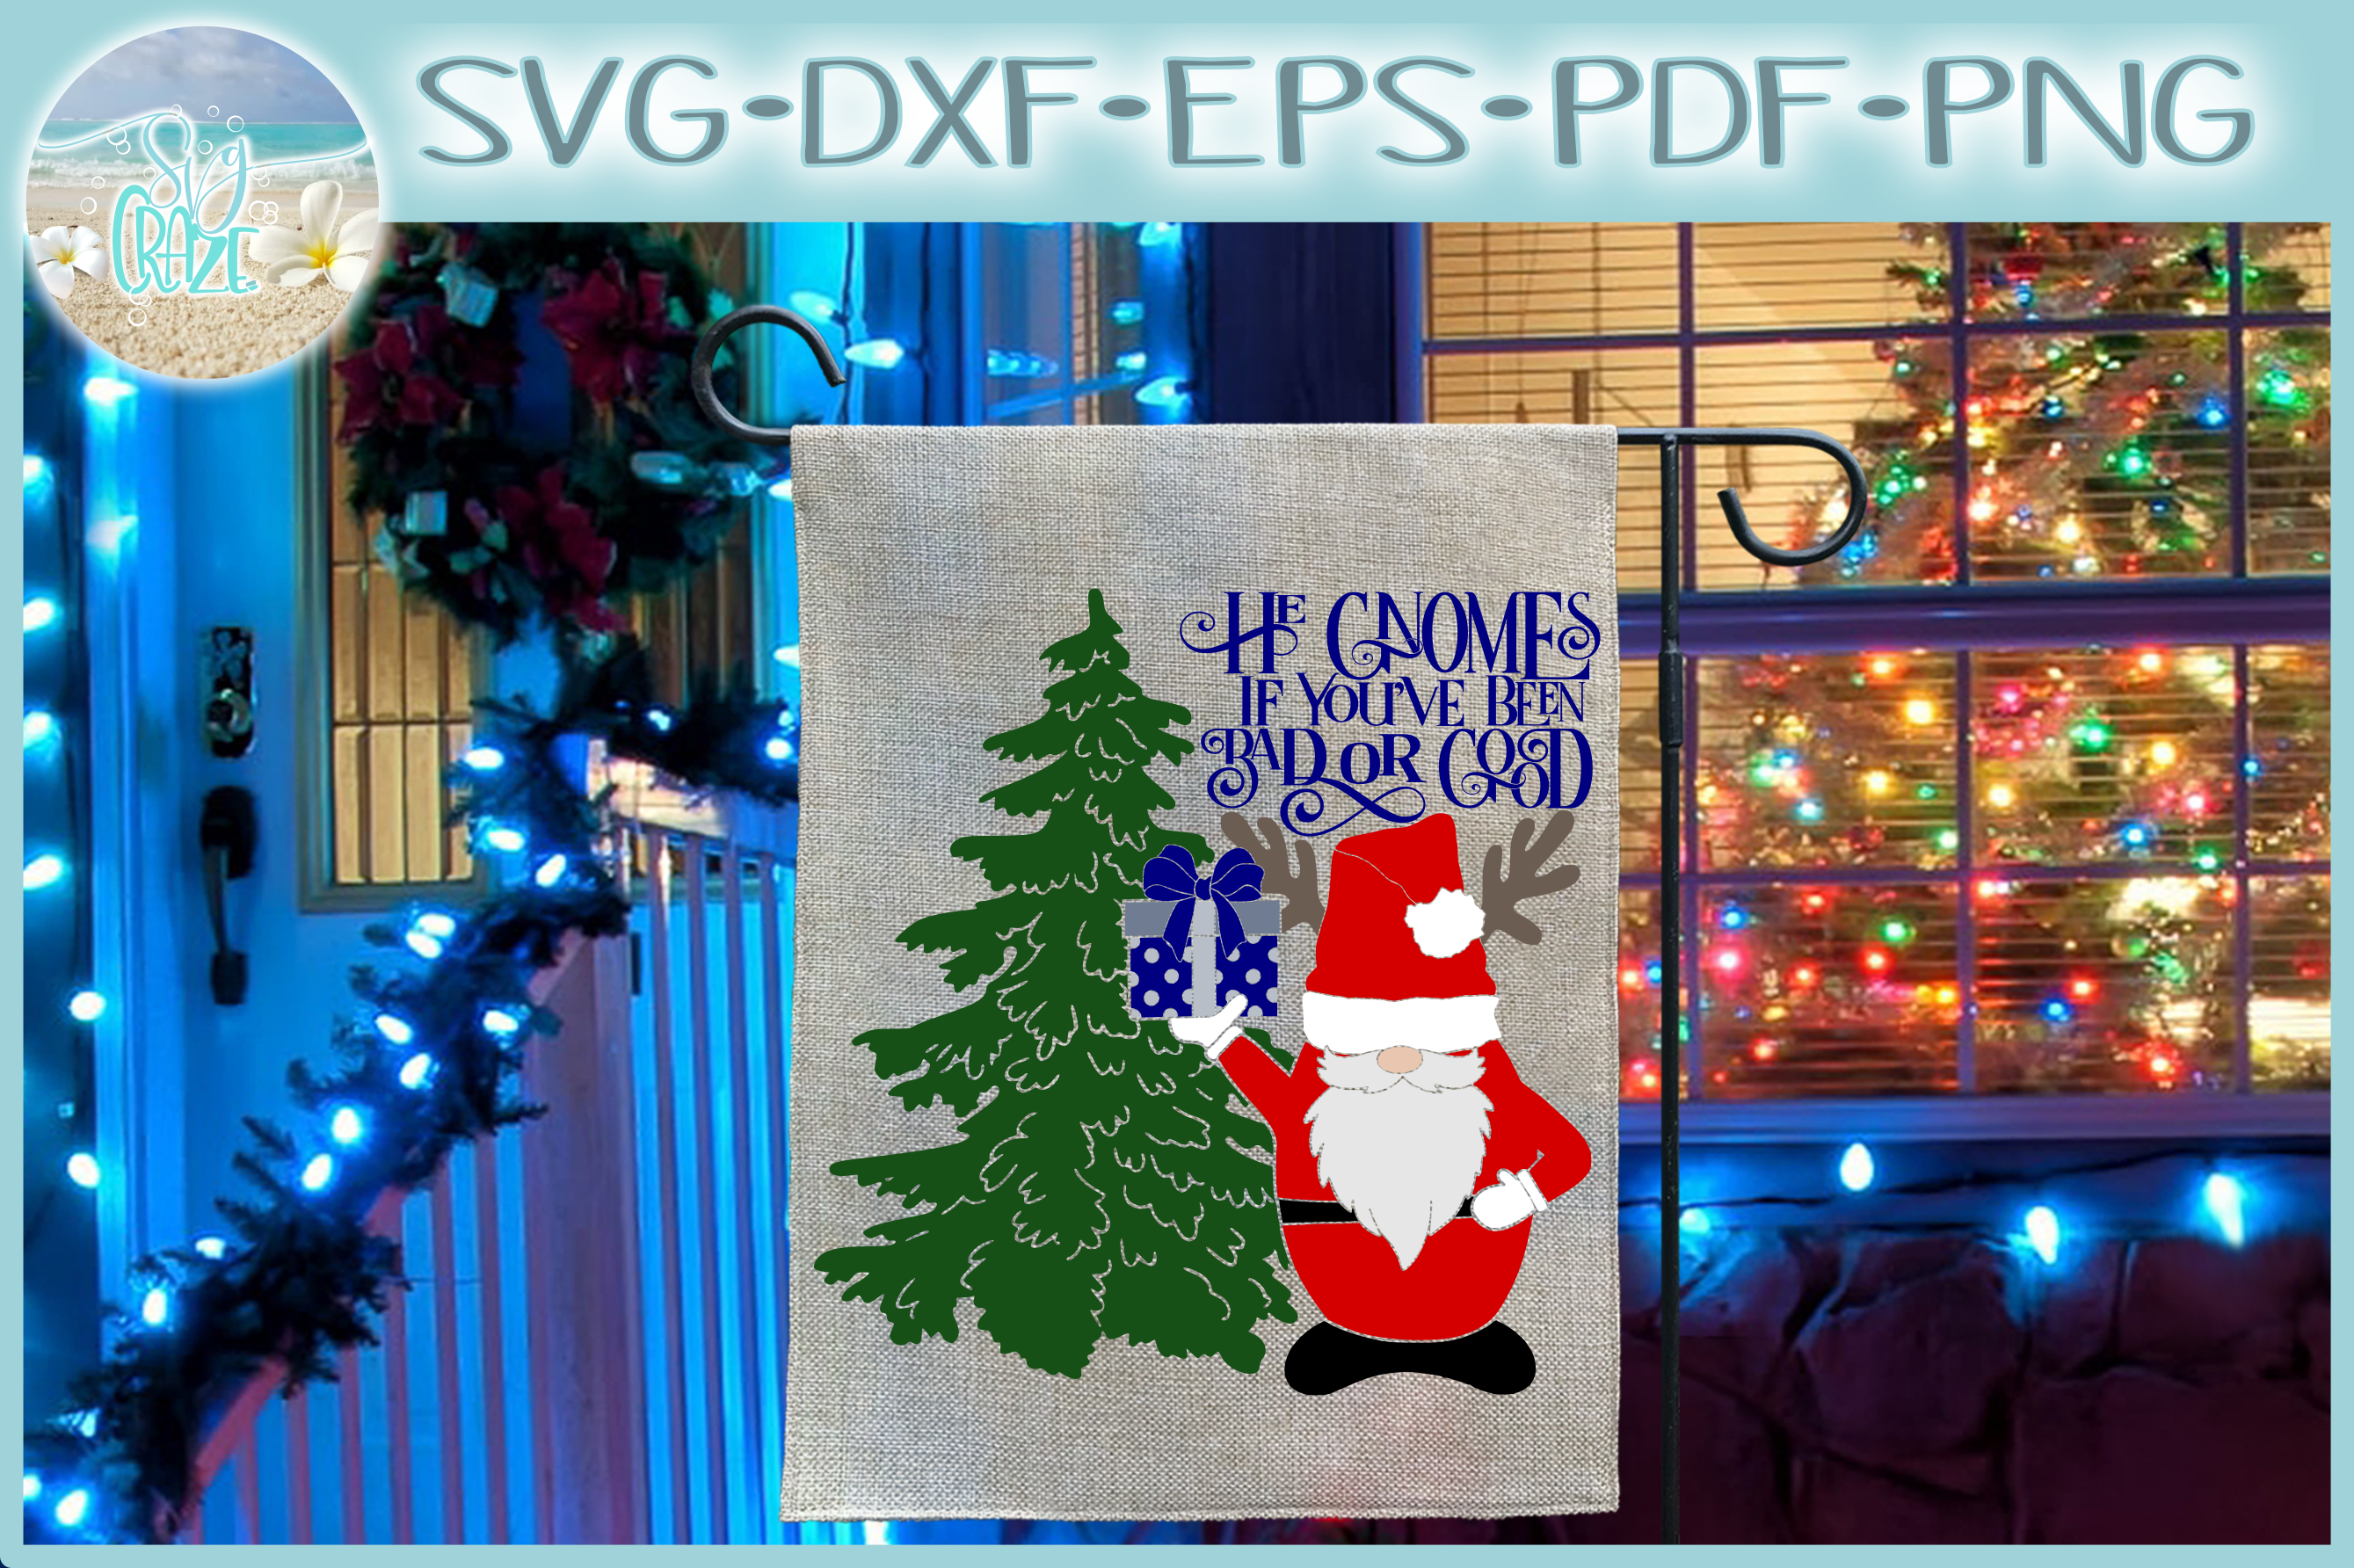 He Gnomes If Youve Been Bad Or Good Quote Santa Gnome SVG example image 1